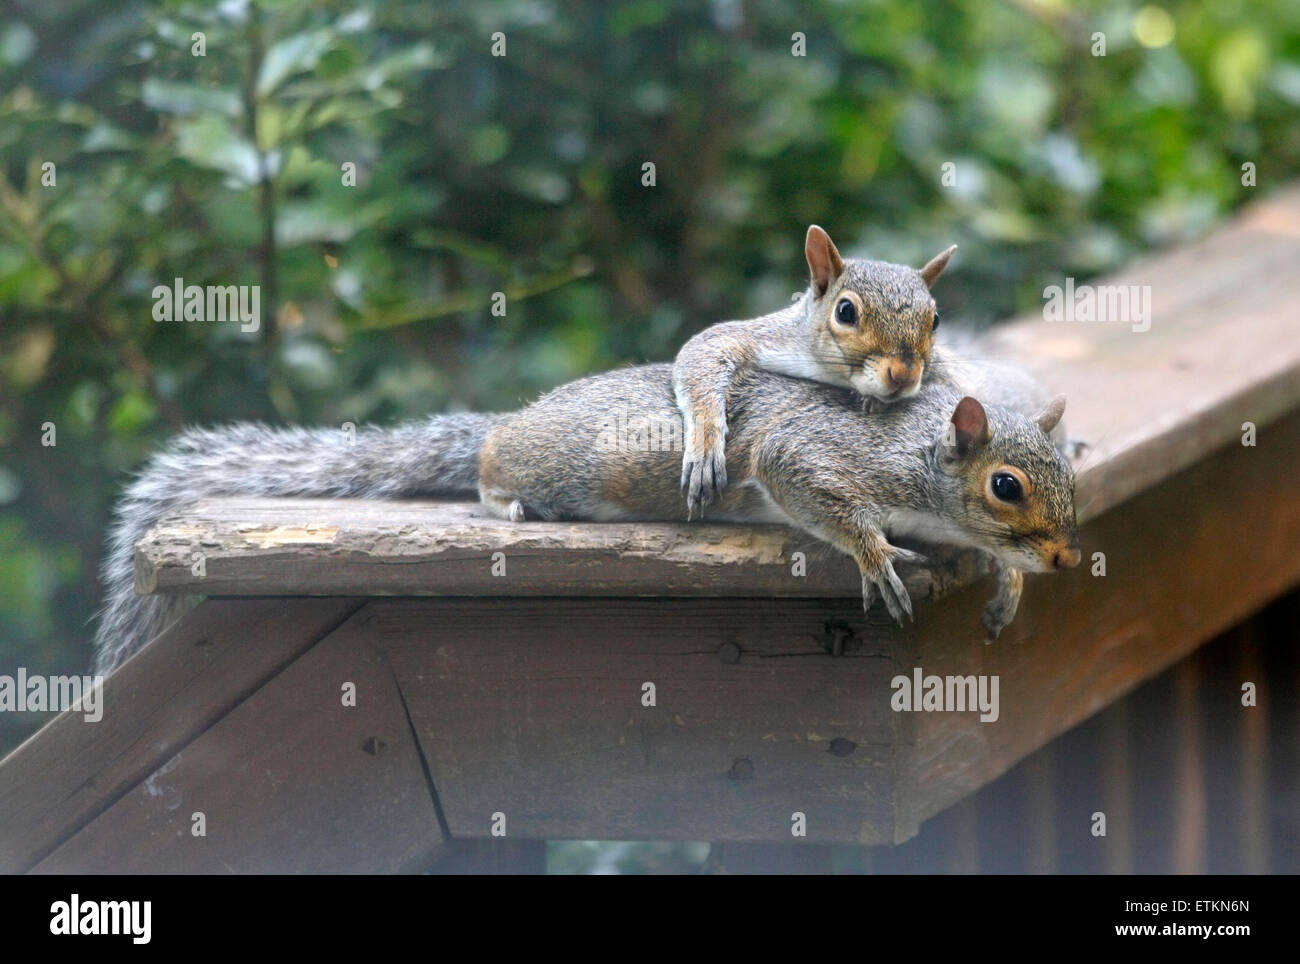 eastern-grey-gray-squirrels-sciurus-carolinensis-laying-together-on-ETKN6N.jpg